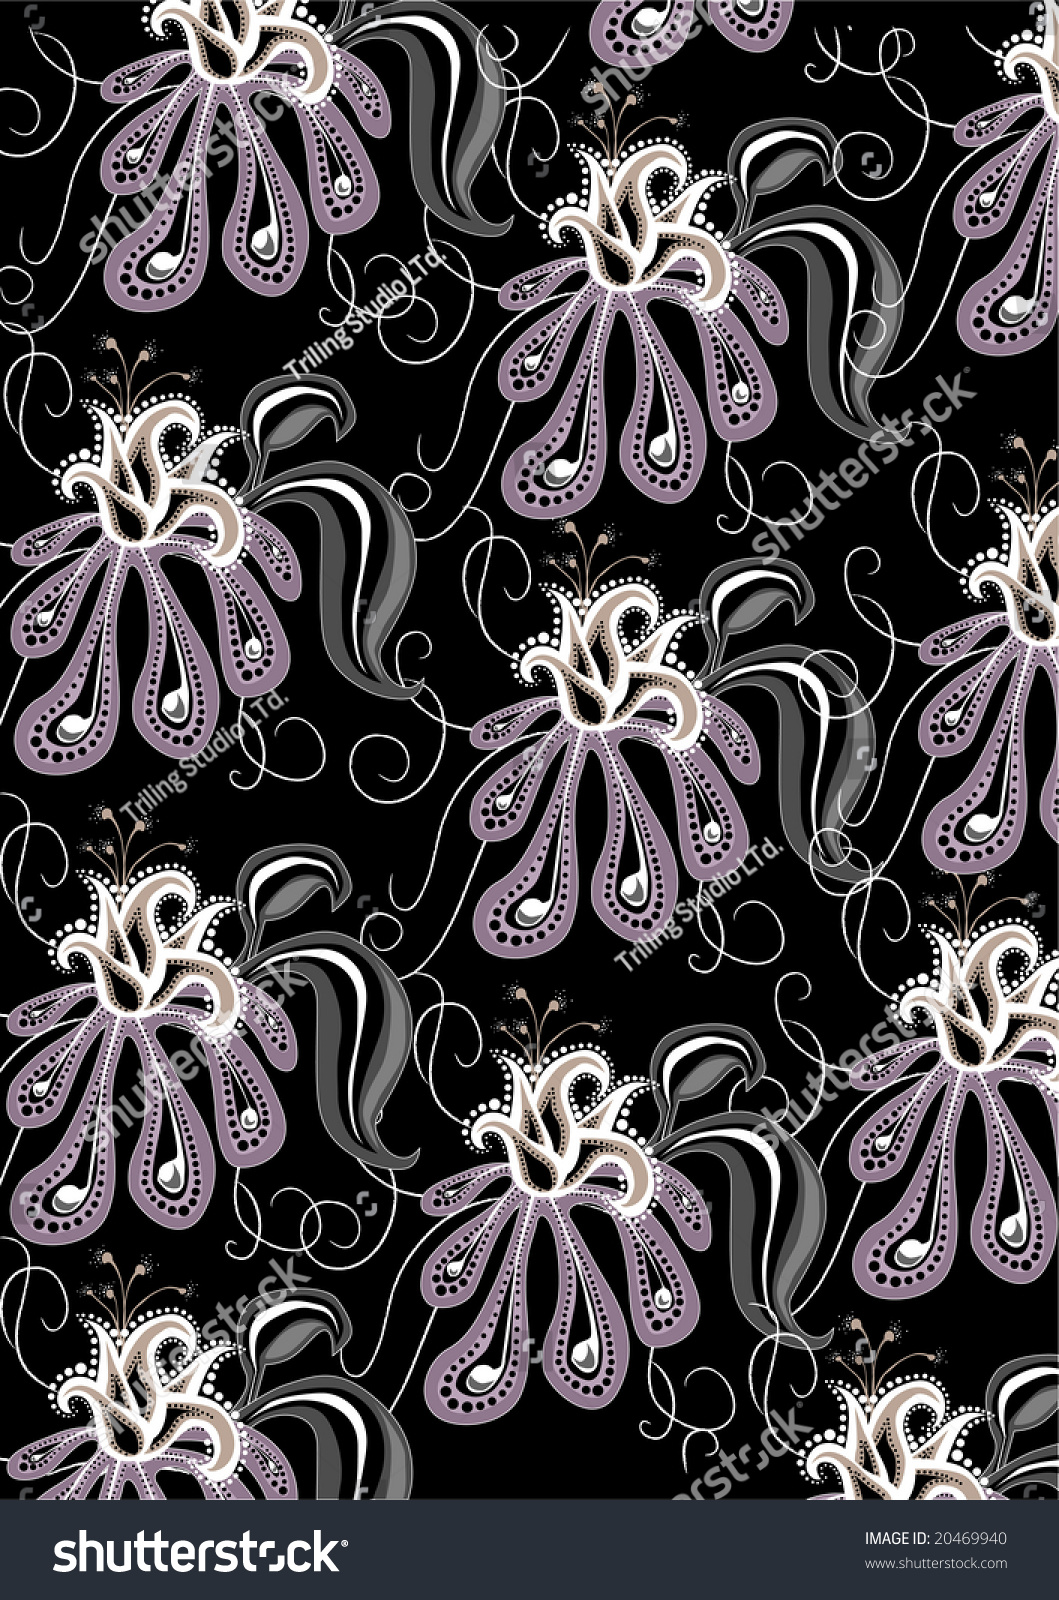 abstract funky pattern wallpaper - photo #25